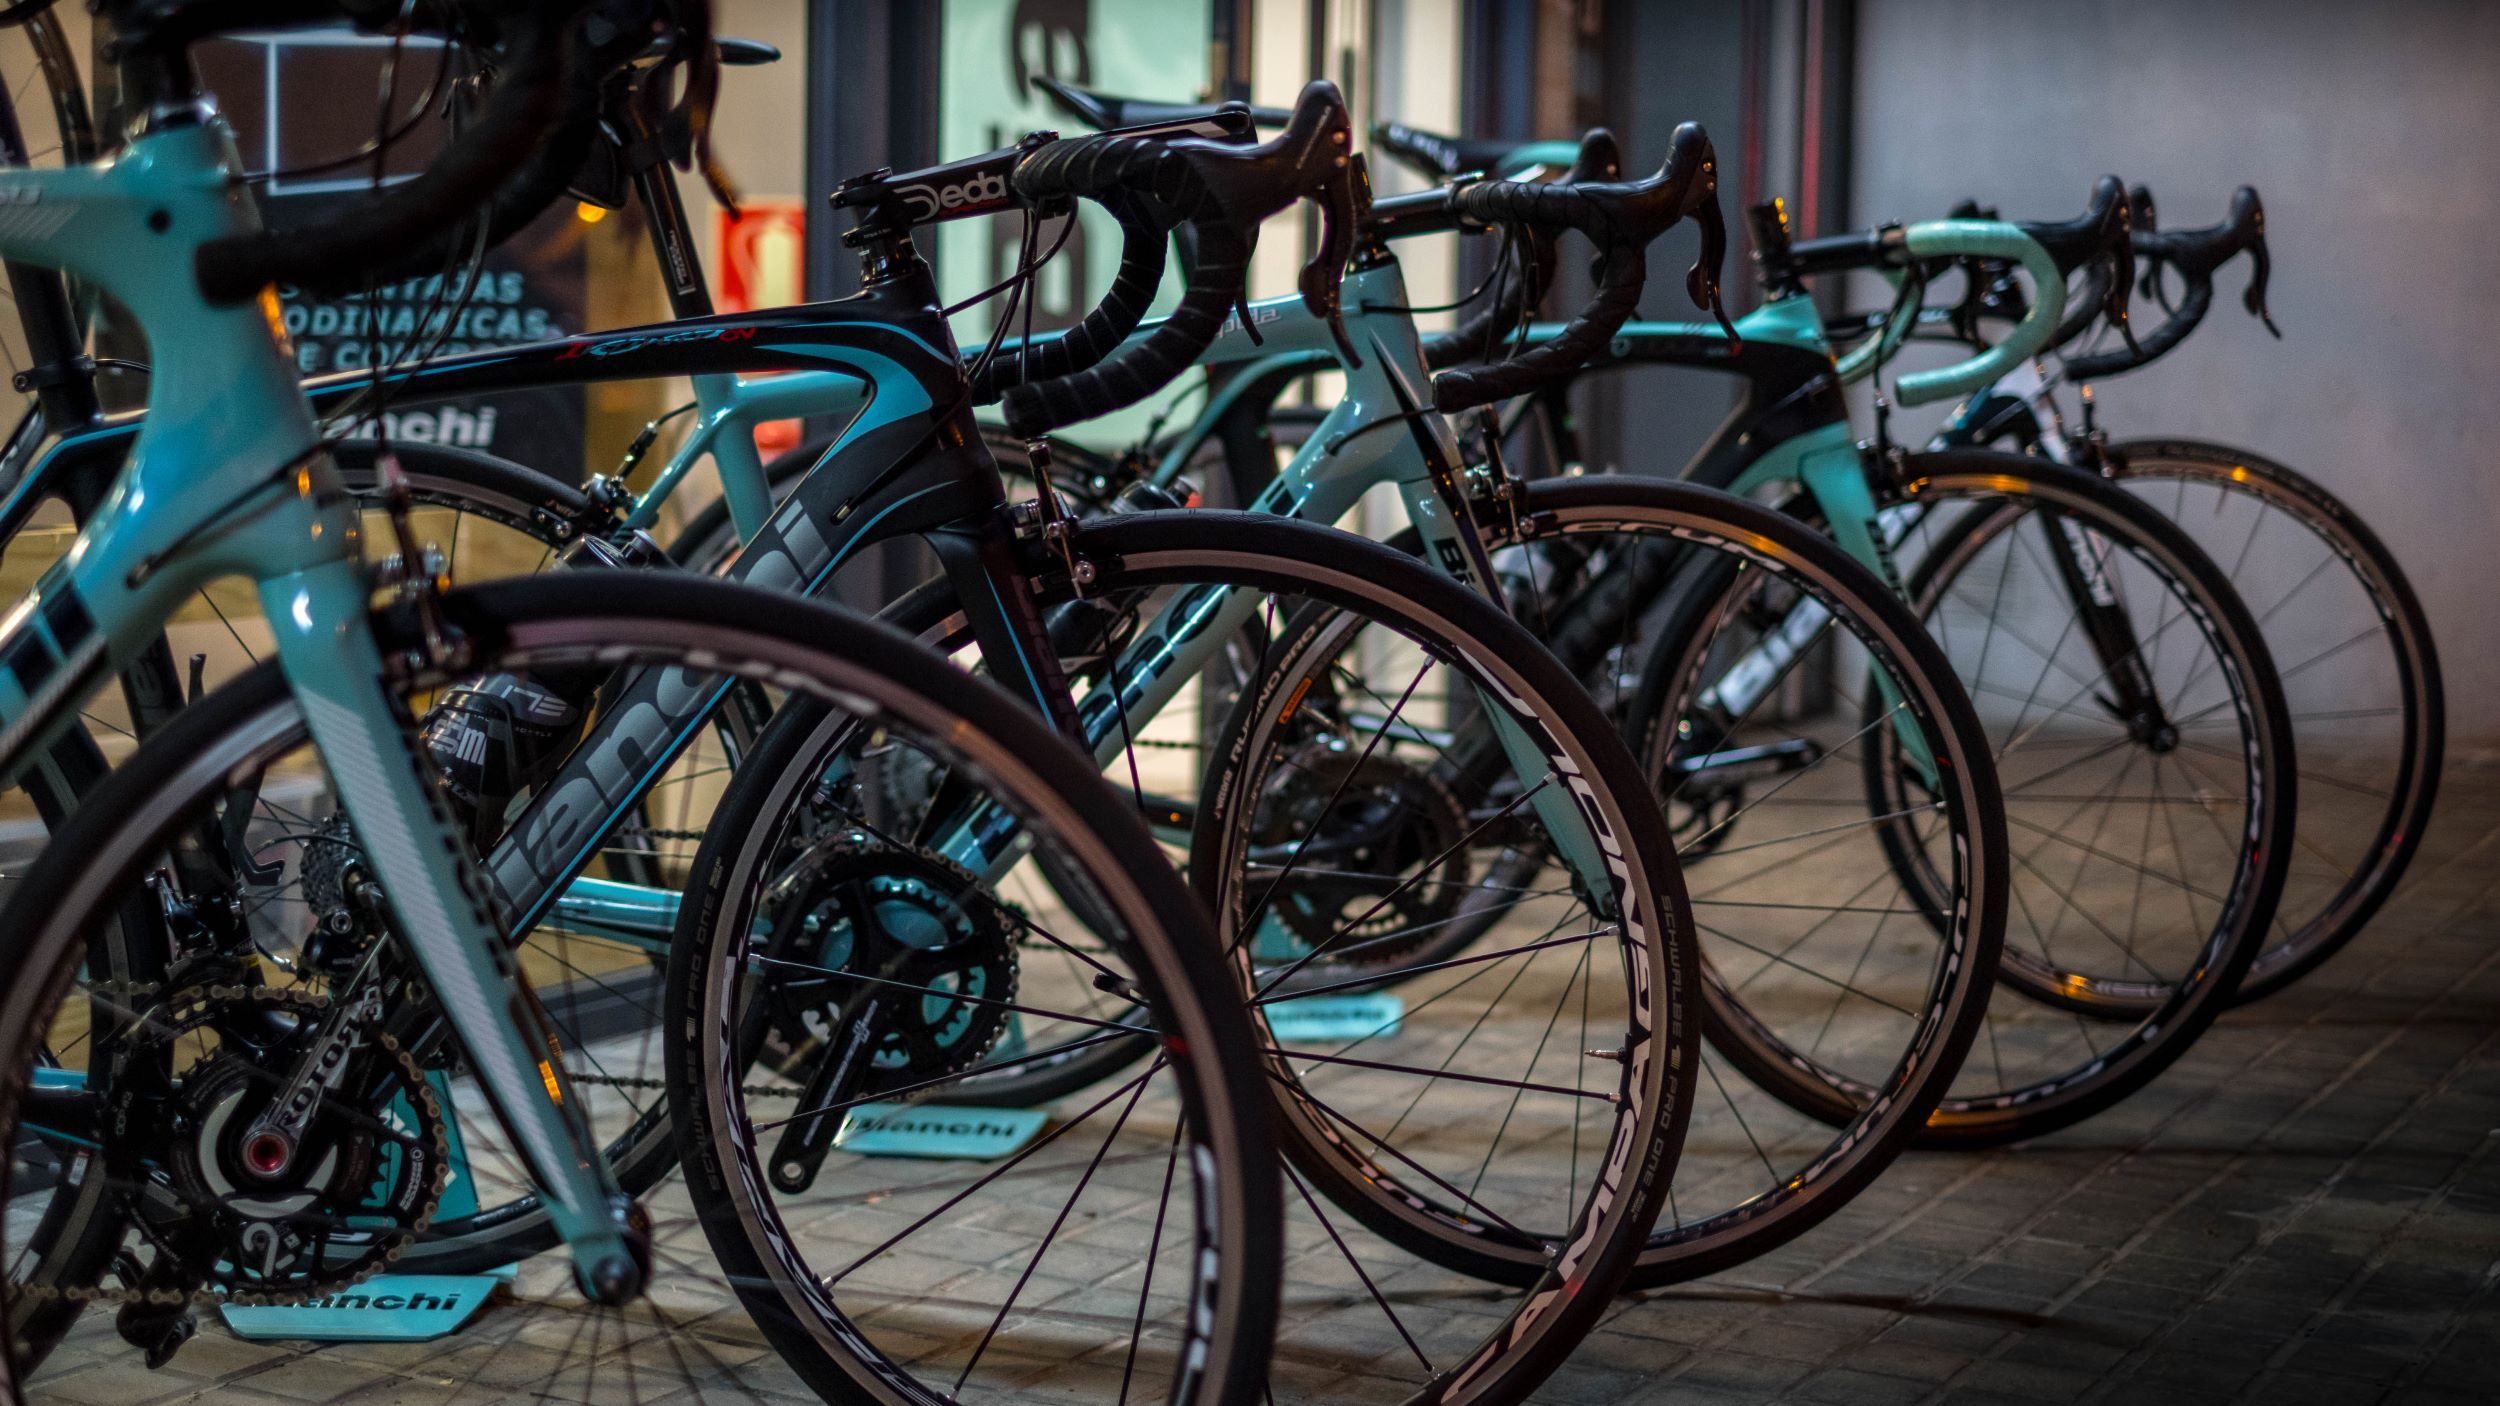 Bianchi bicycles - Cuesta Cycling has a large fleet of the latest Bianchi road bikes in a wide range of sizes.